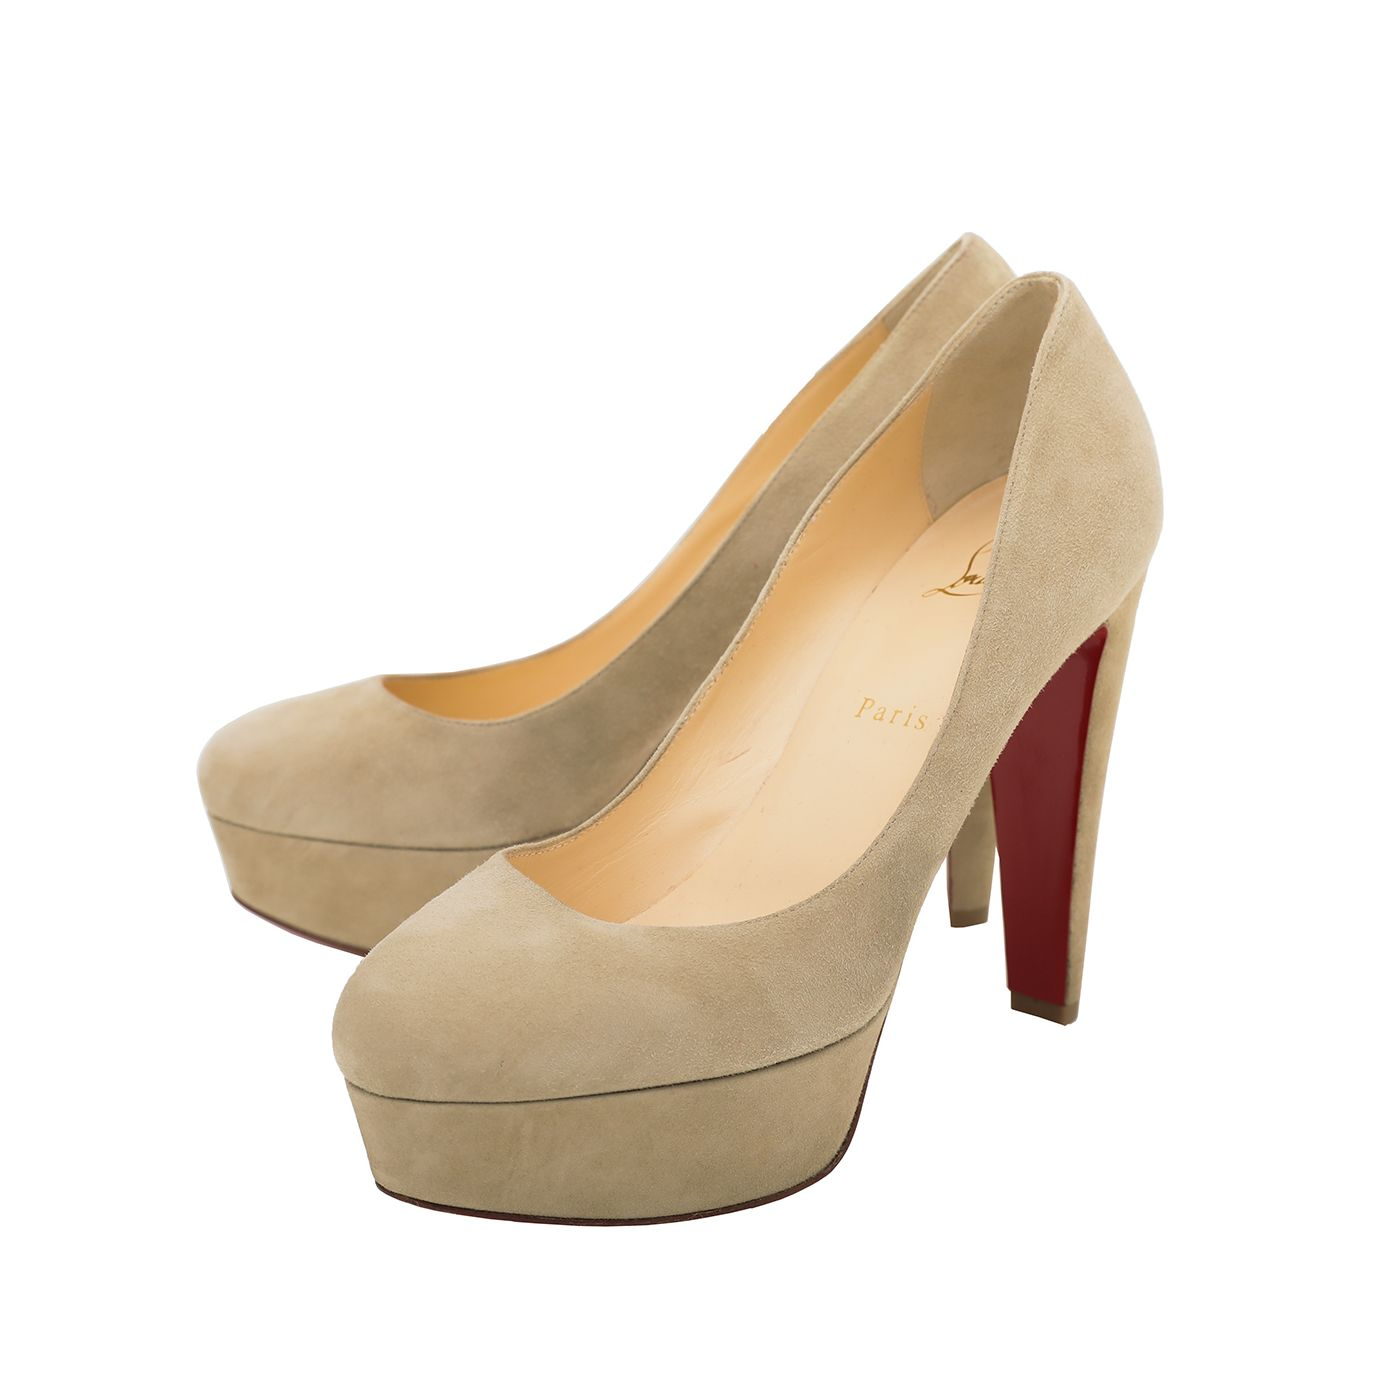 Christian Louboutin Greenish Beige Bibi Pumps 120mm 39.5